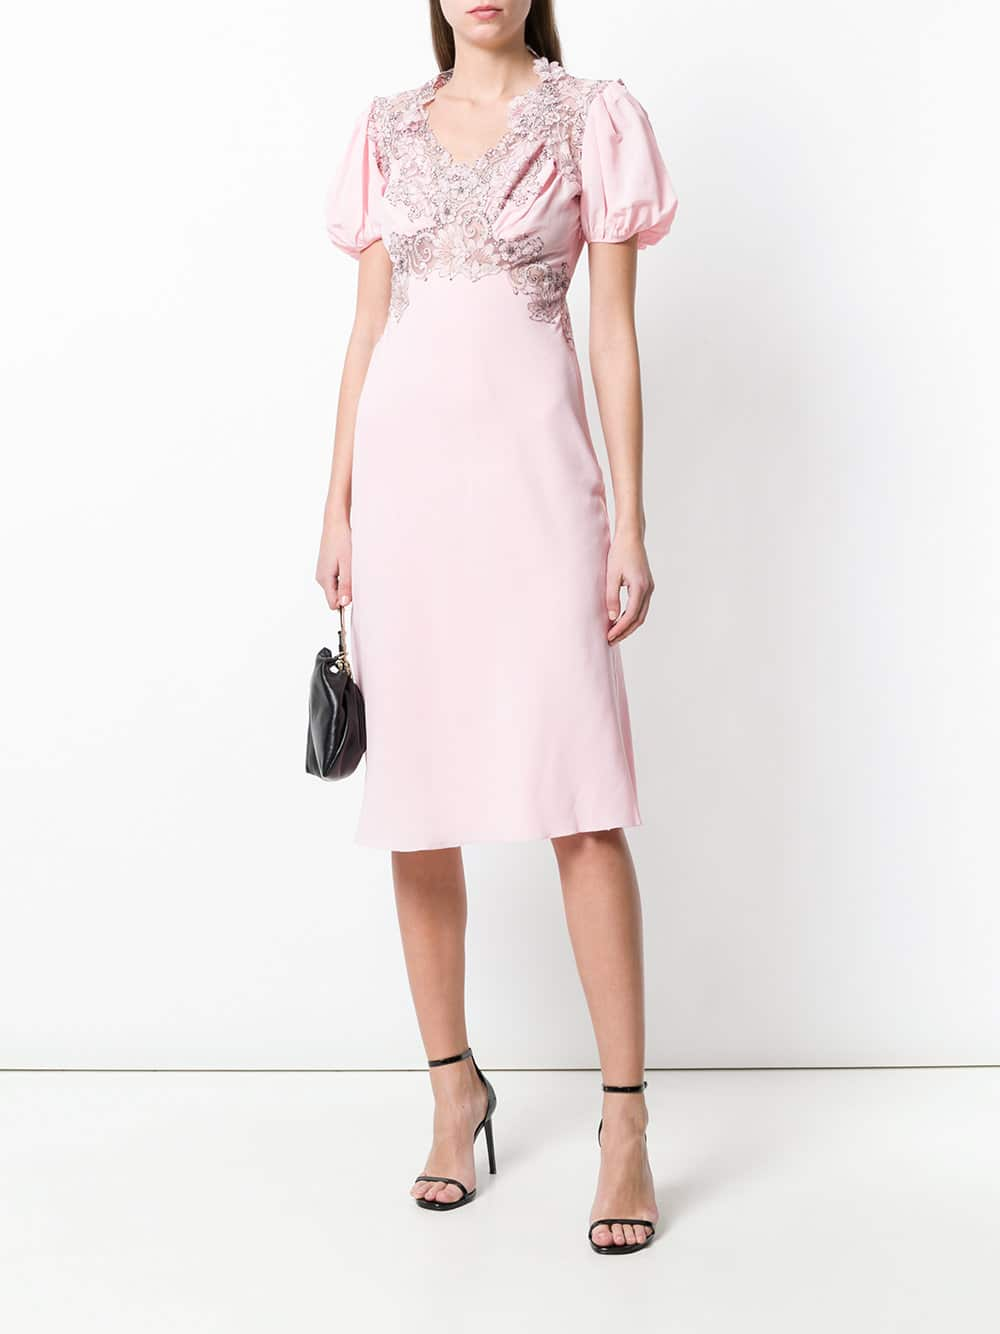 6069d1a5f2 ERMANNO SCERVINO Embroidered Retro Pink Dress - We Select Dresses